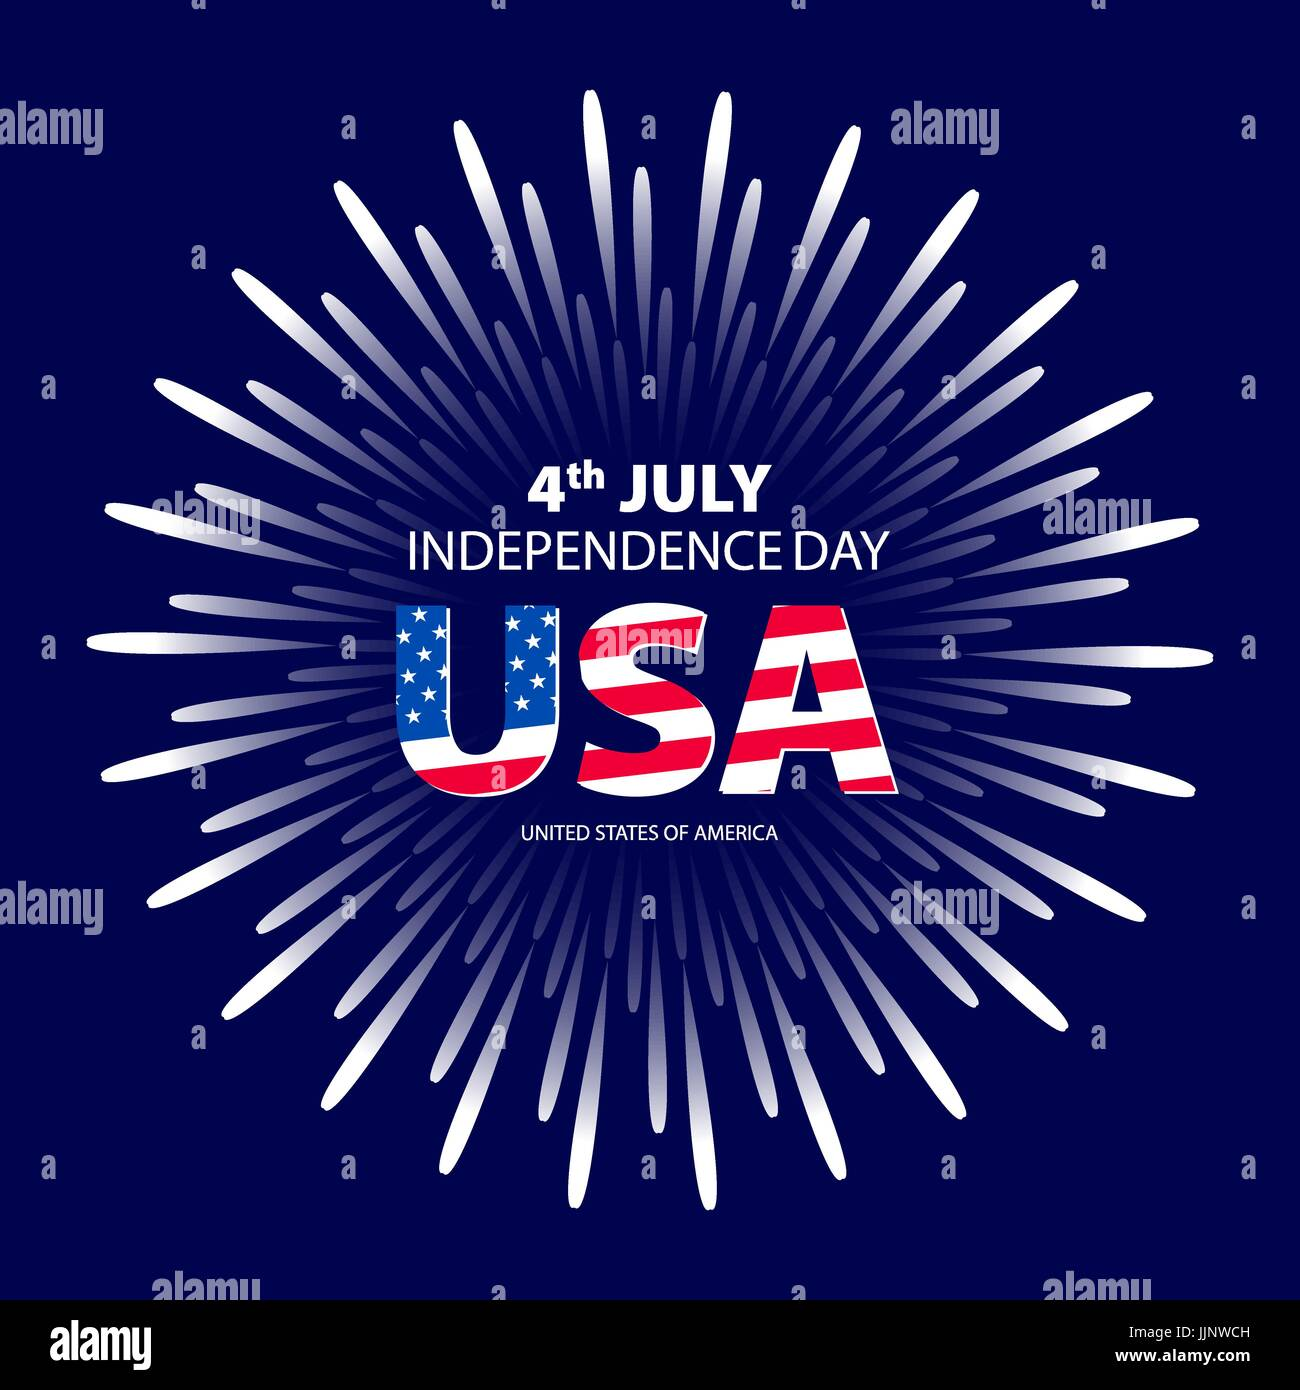 Happy 4th July independence day with fireworks background. vector art - Stock Vector